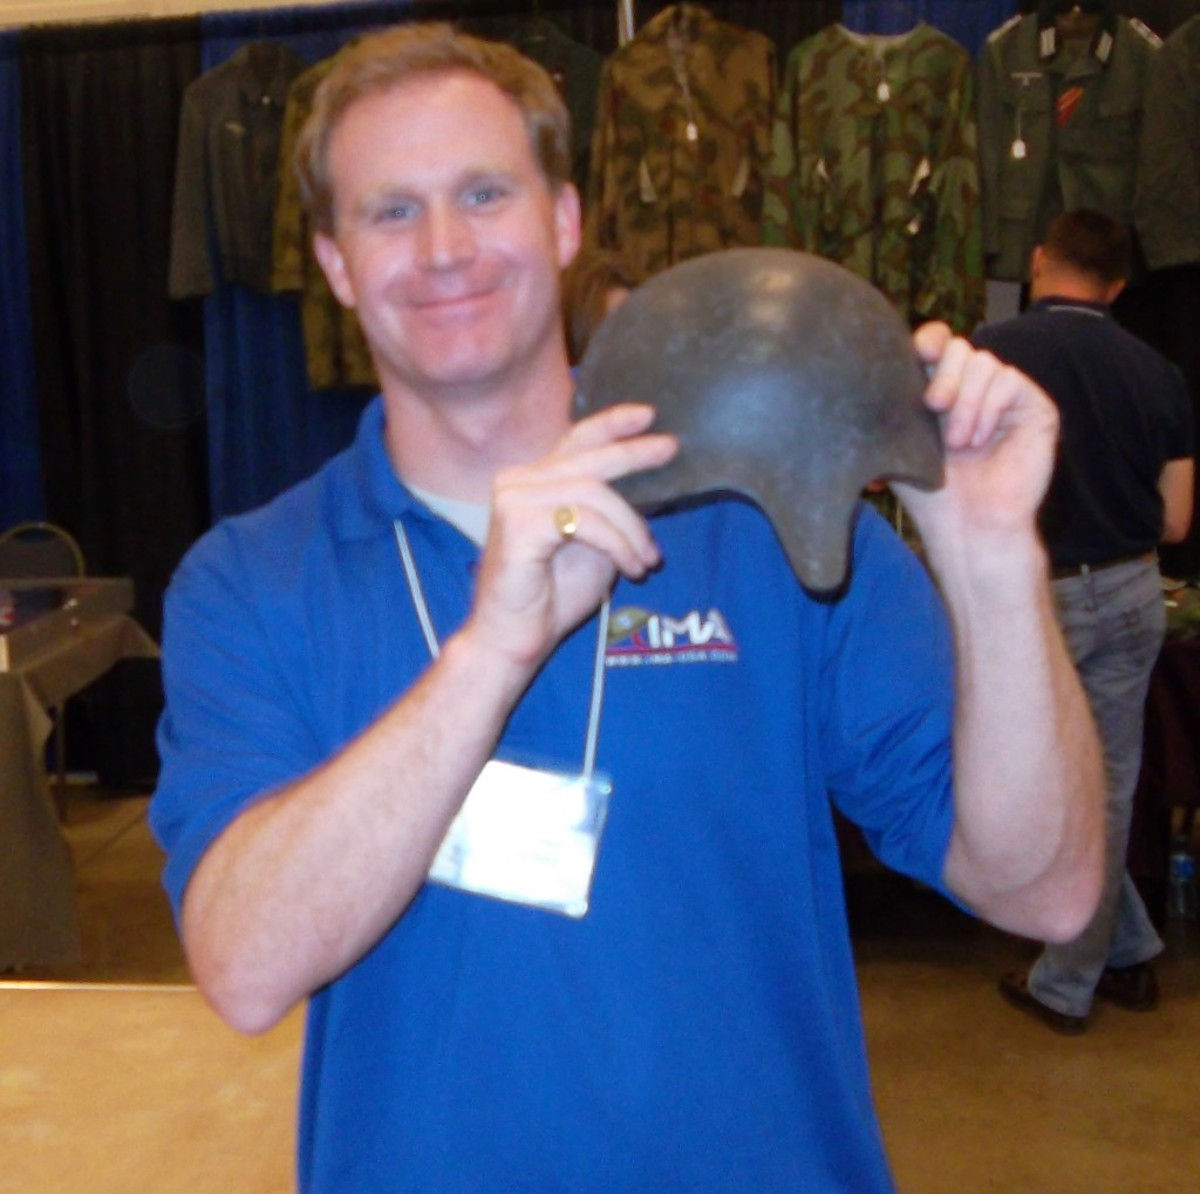 """Alex Cranmer of IMA-USA shows off his recent purchase, an early German skullcap often known as the """"Gaede helmet, after Army Group Gaede, which saw its development"""